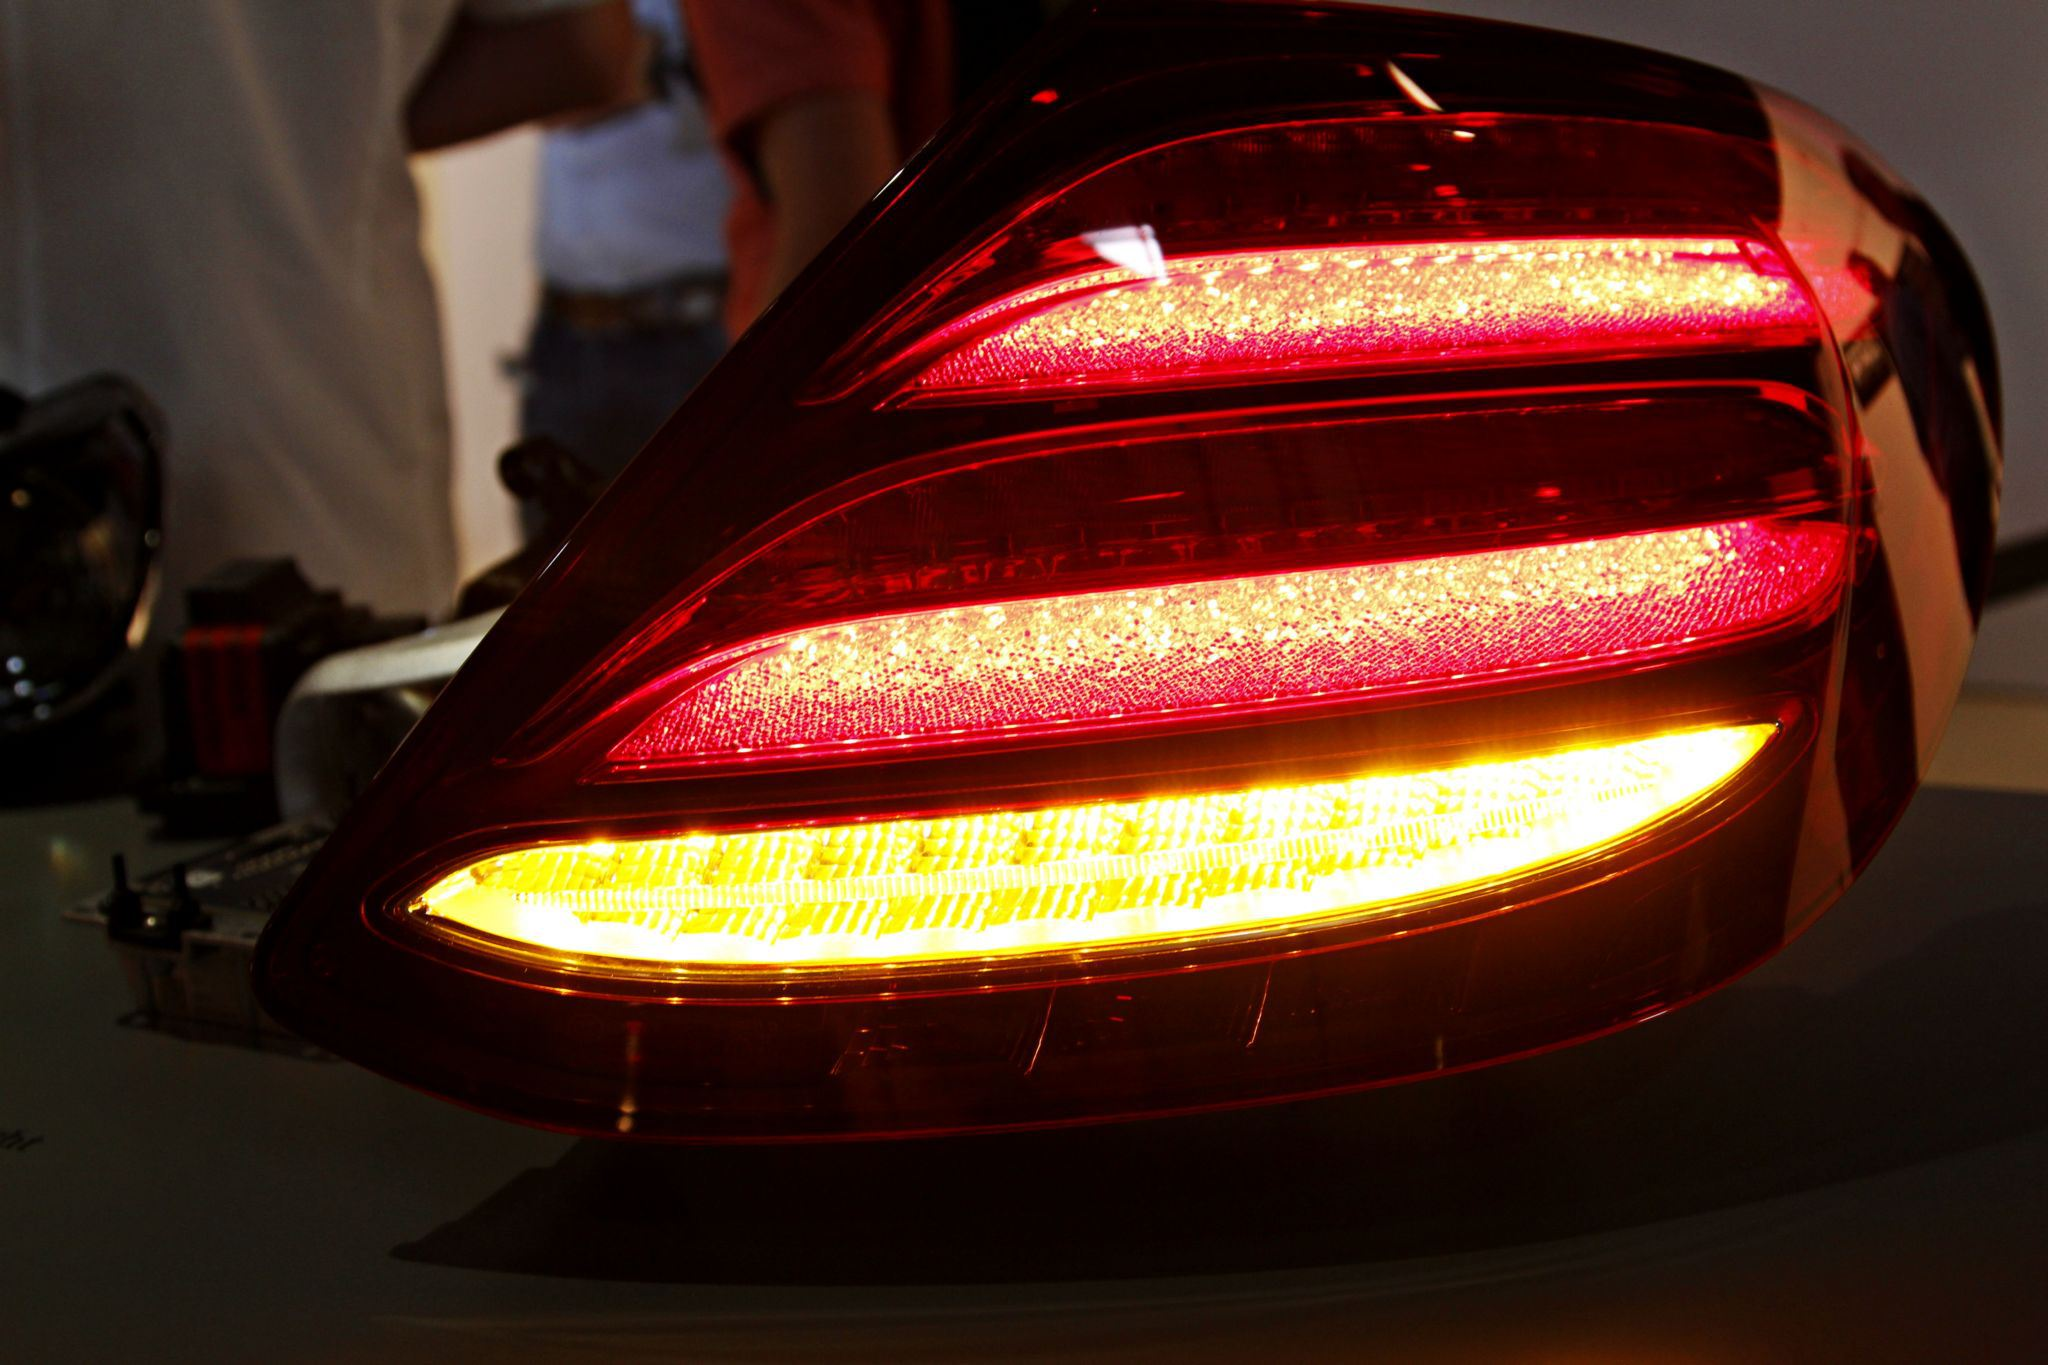 Heat Shield Car >> How to Tint Your Car's Taillights - autoevolution